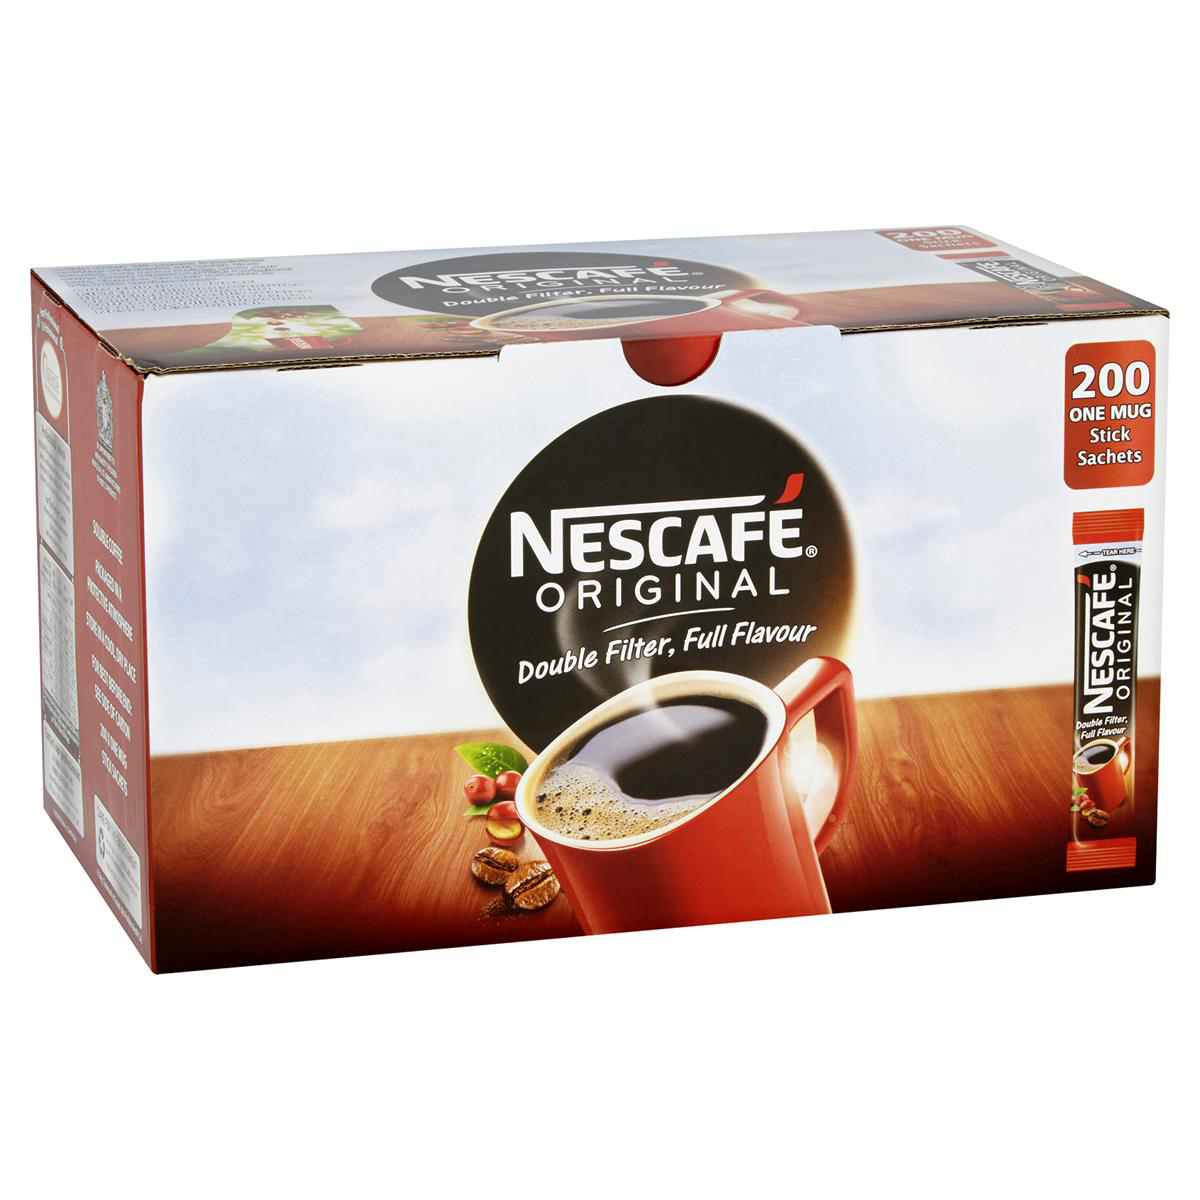 Nescafe Original Instant Coffee Granules Stick Sachets Ref 12315596 [Pack 200]